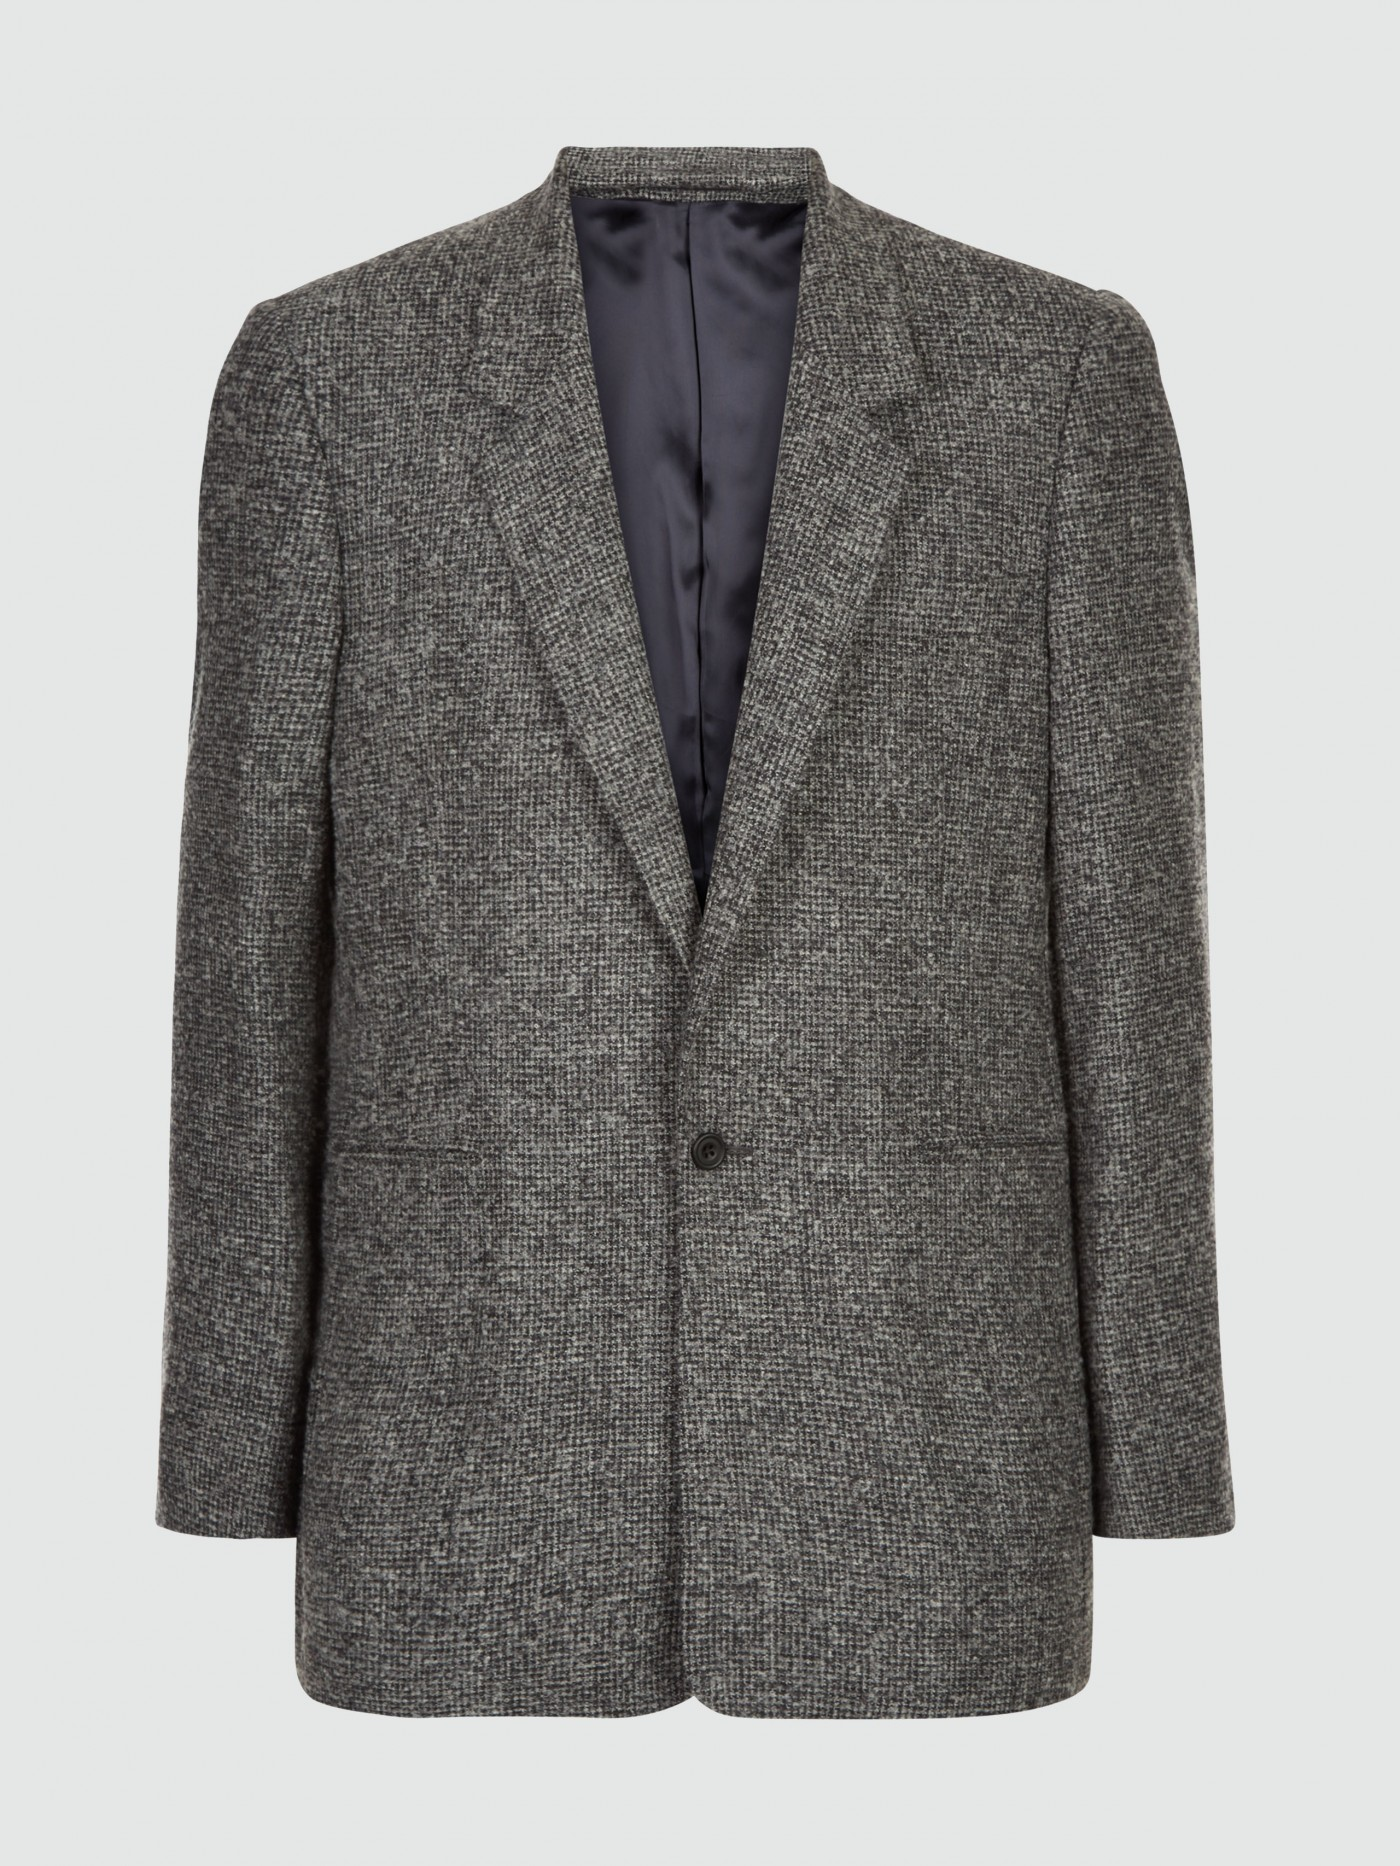 E. Tautz Grey / Charcoal Boucle Check Single Breasted Jacket